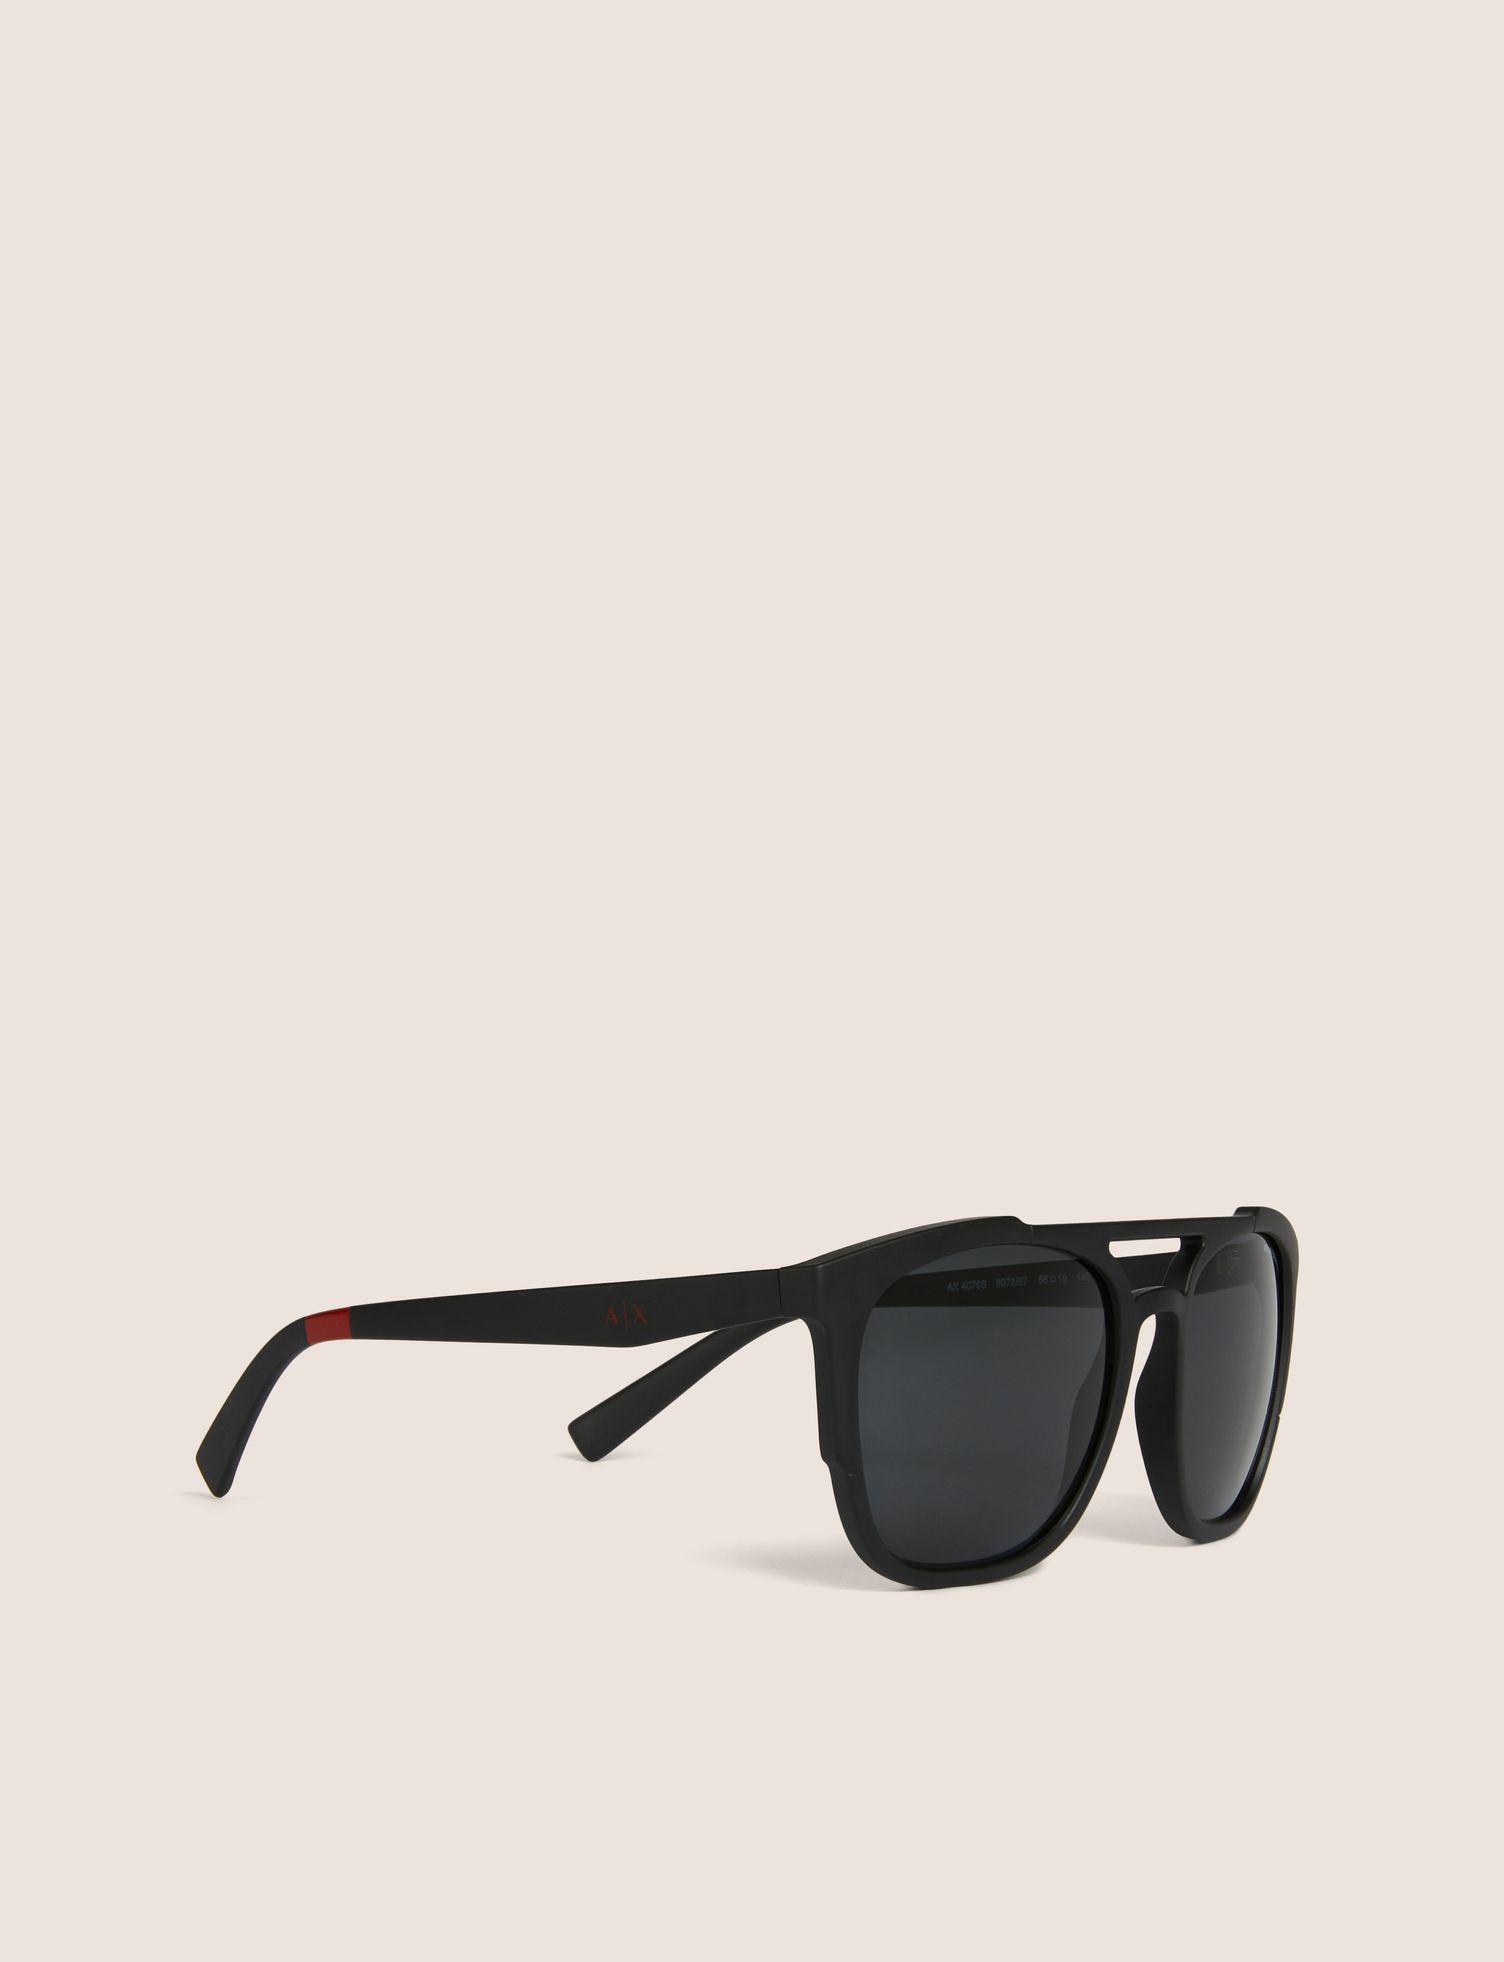 dc5c91ac3a5a Lyst - Armani Exchange Sunglass in Black for Men